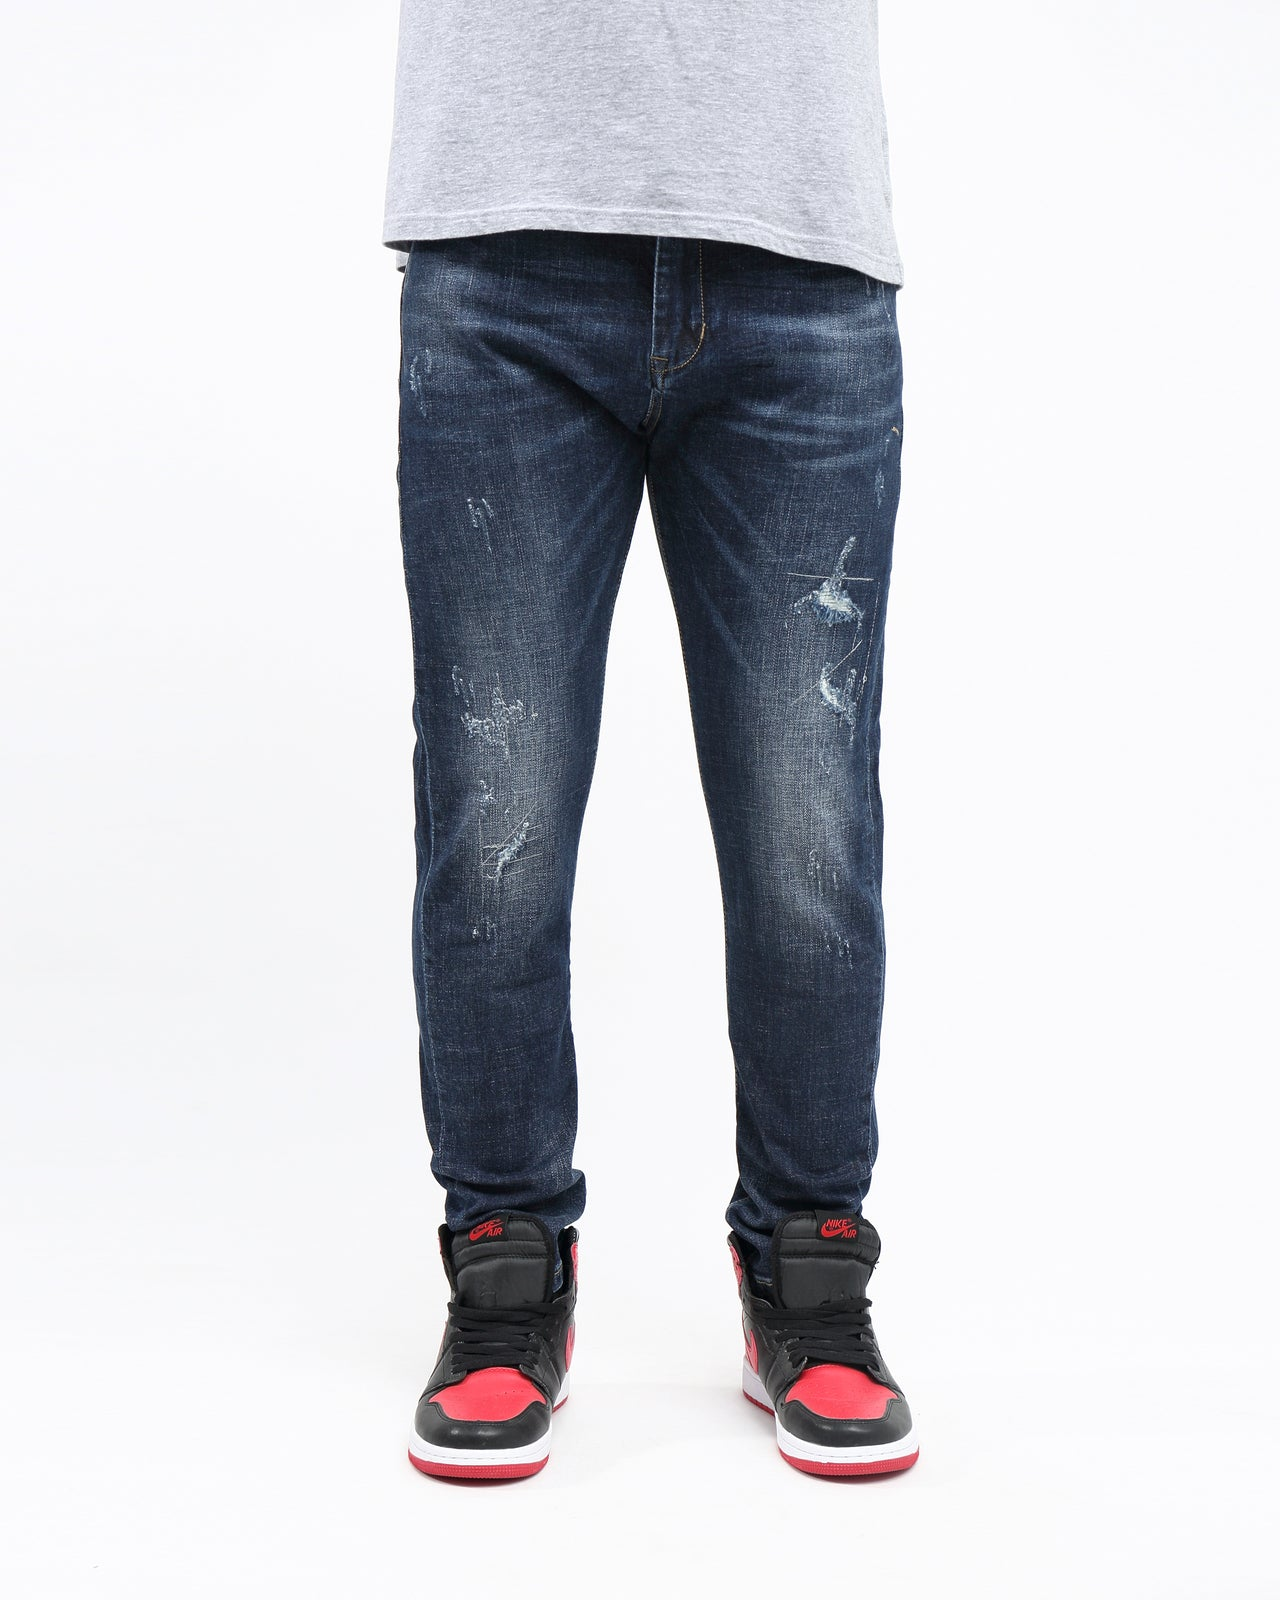 Stretch Splash Vintage Denim - Color: Blue